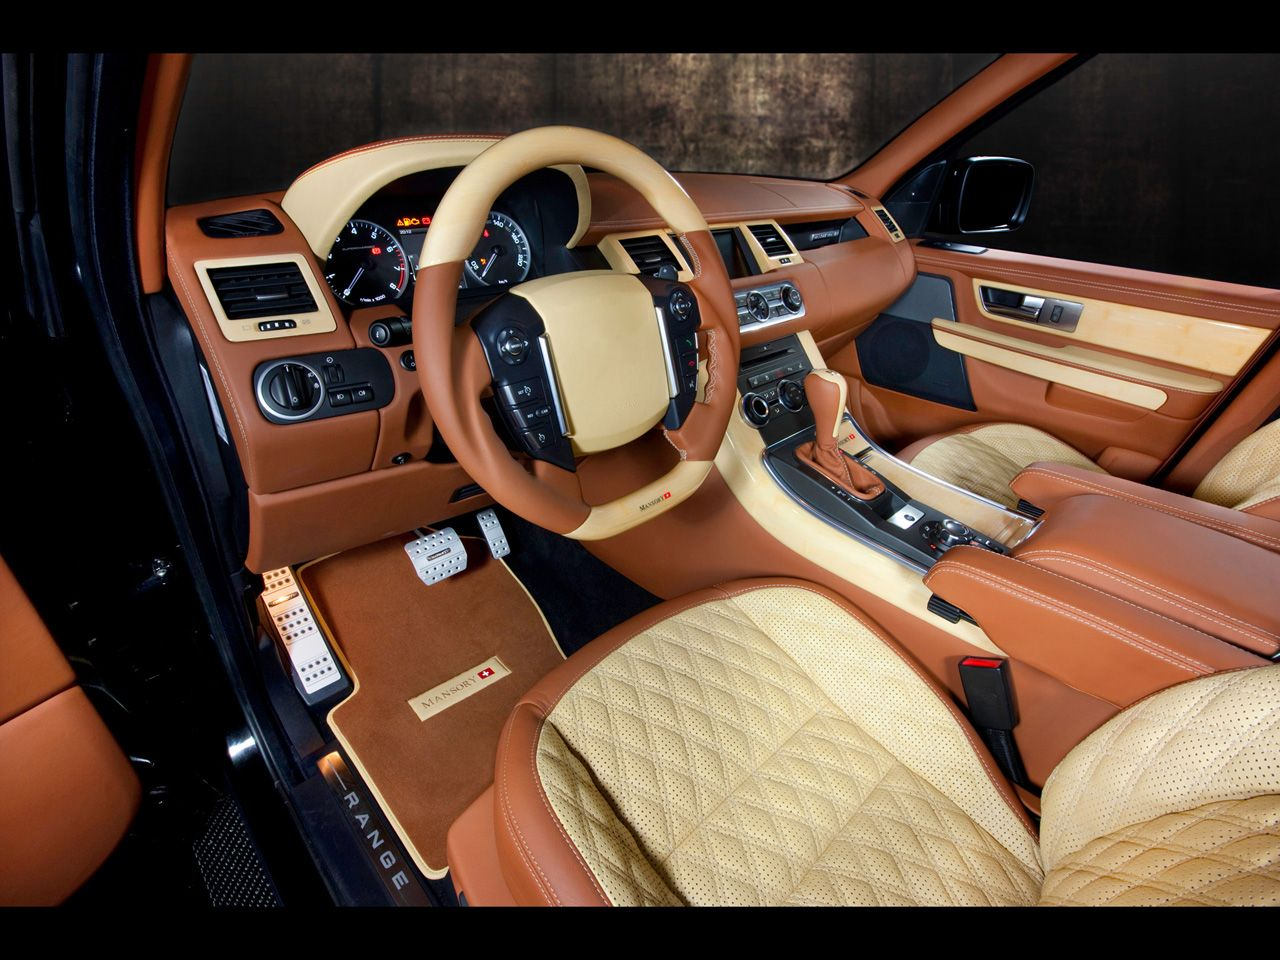 faze rug car interior. mansory range rover car 2014 at http://www.hdwallcloud.com/mansory-range-rover-car-2014/ | hd wall cloud pinterest faze rug interior